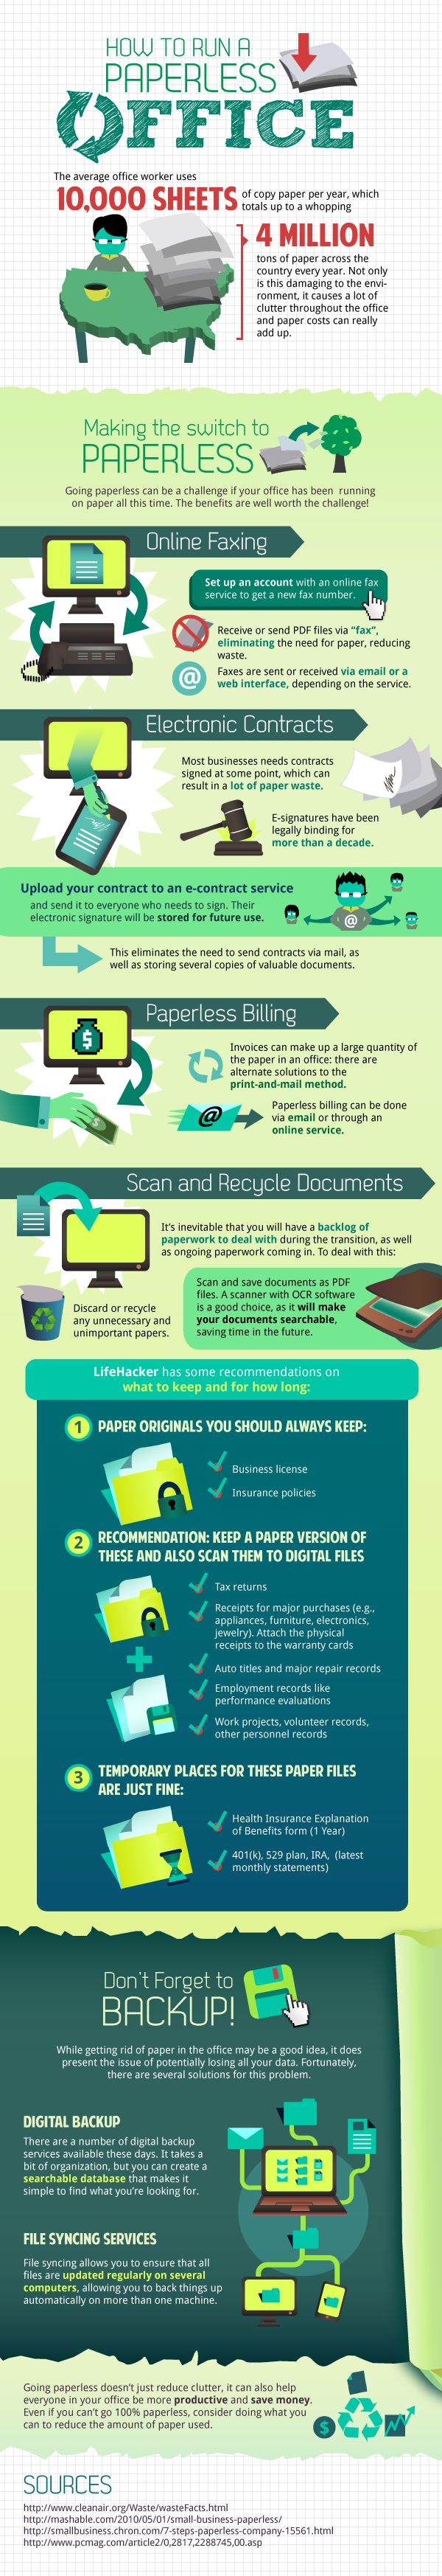 MetroFax shares tips for encouraging a green workspace in this infographic -- learn more about the paperless office on the PGi Blog.